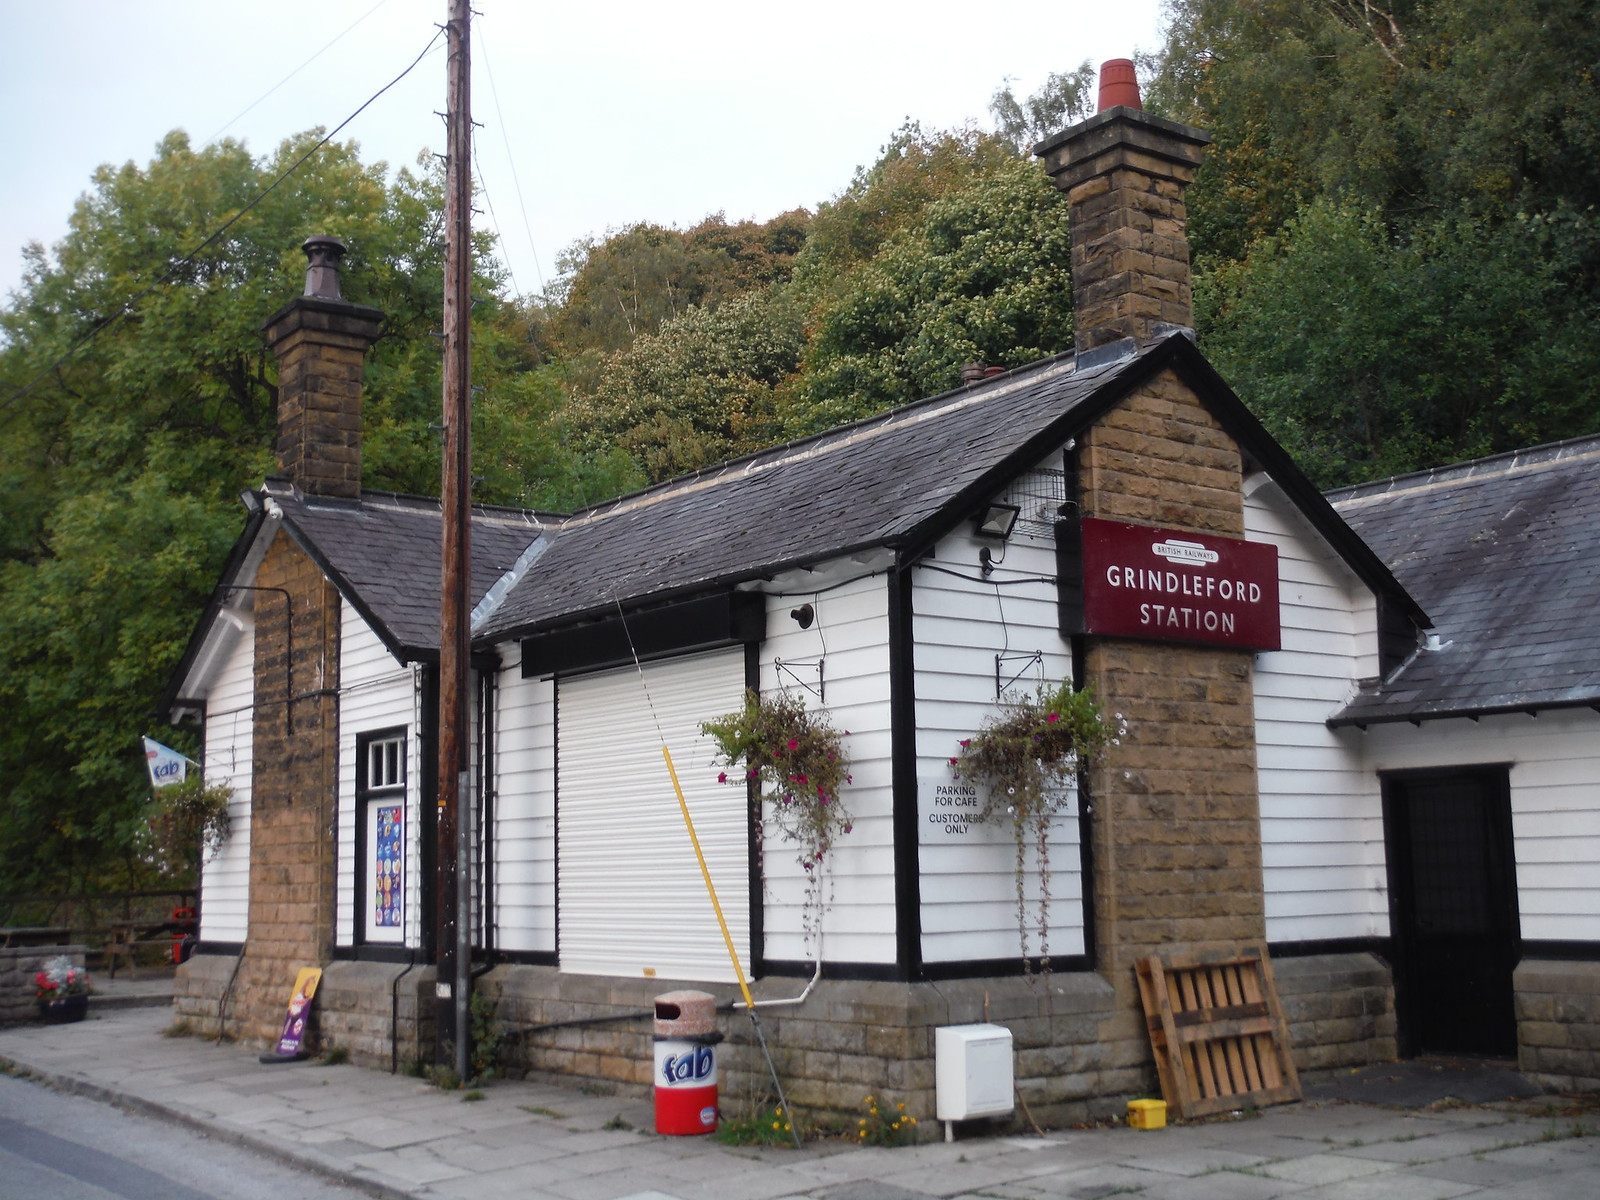 Grindleford Station Cafe SWC Walk 322 - Grindleford Circular (via Chatsworth House)